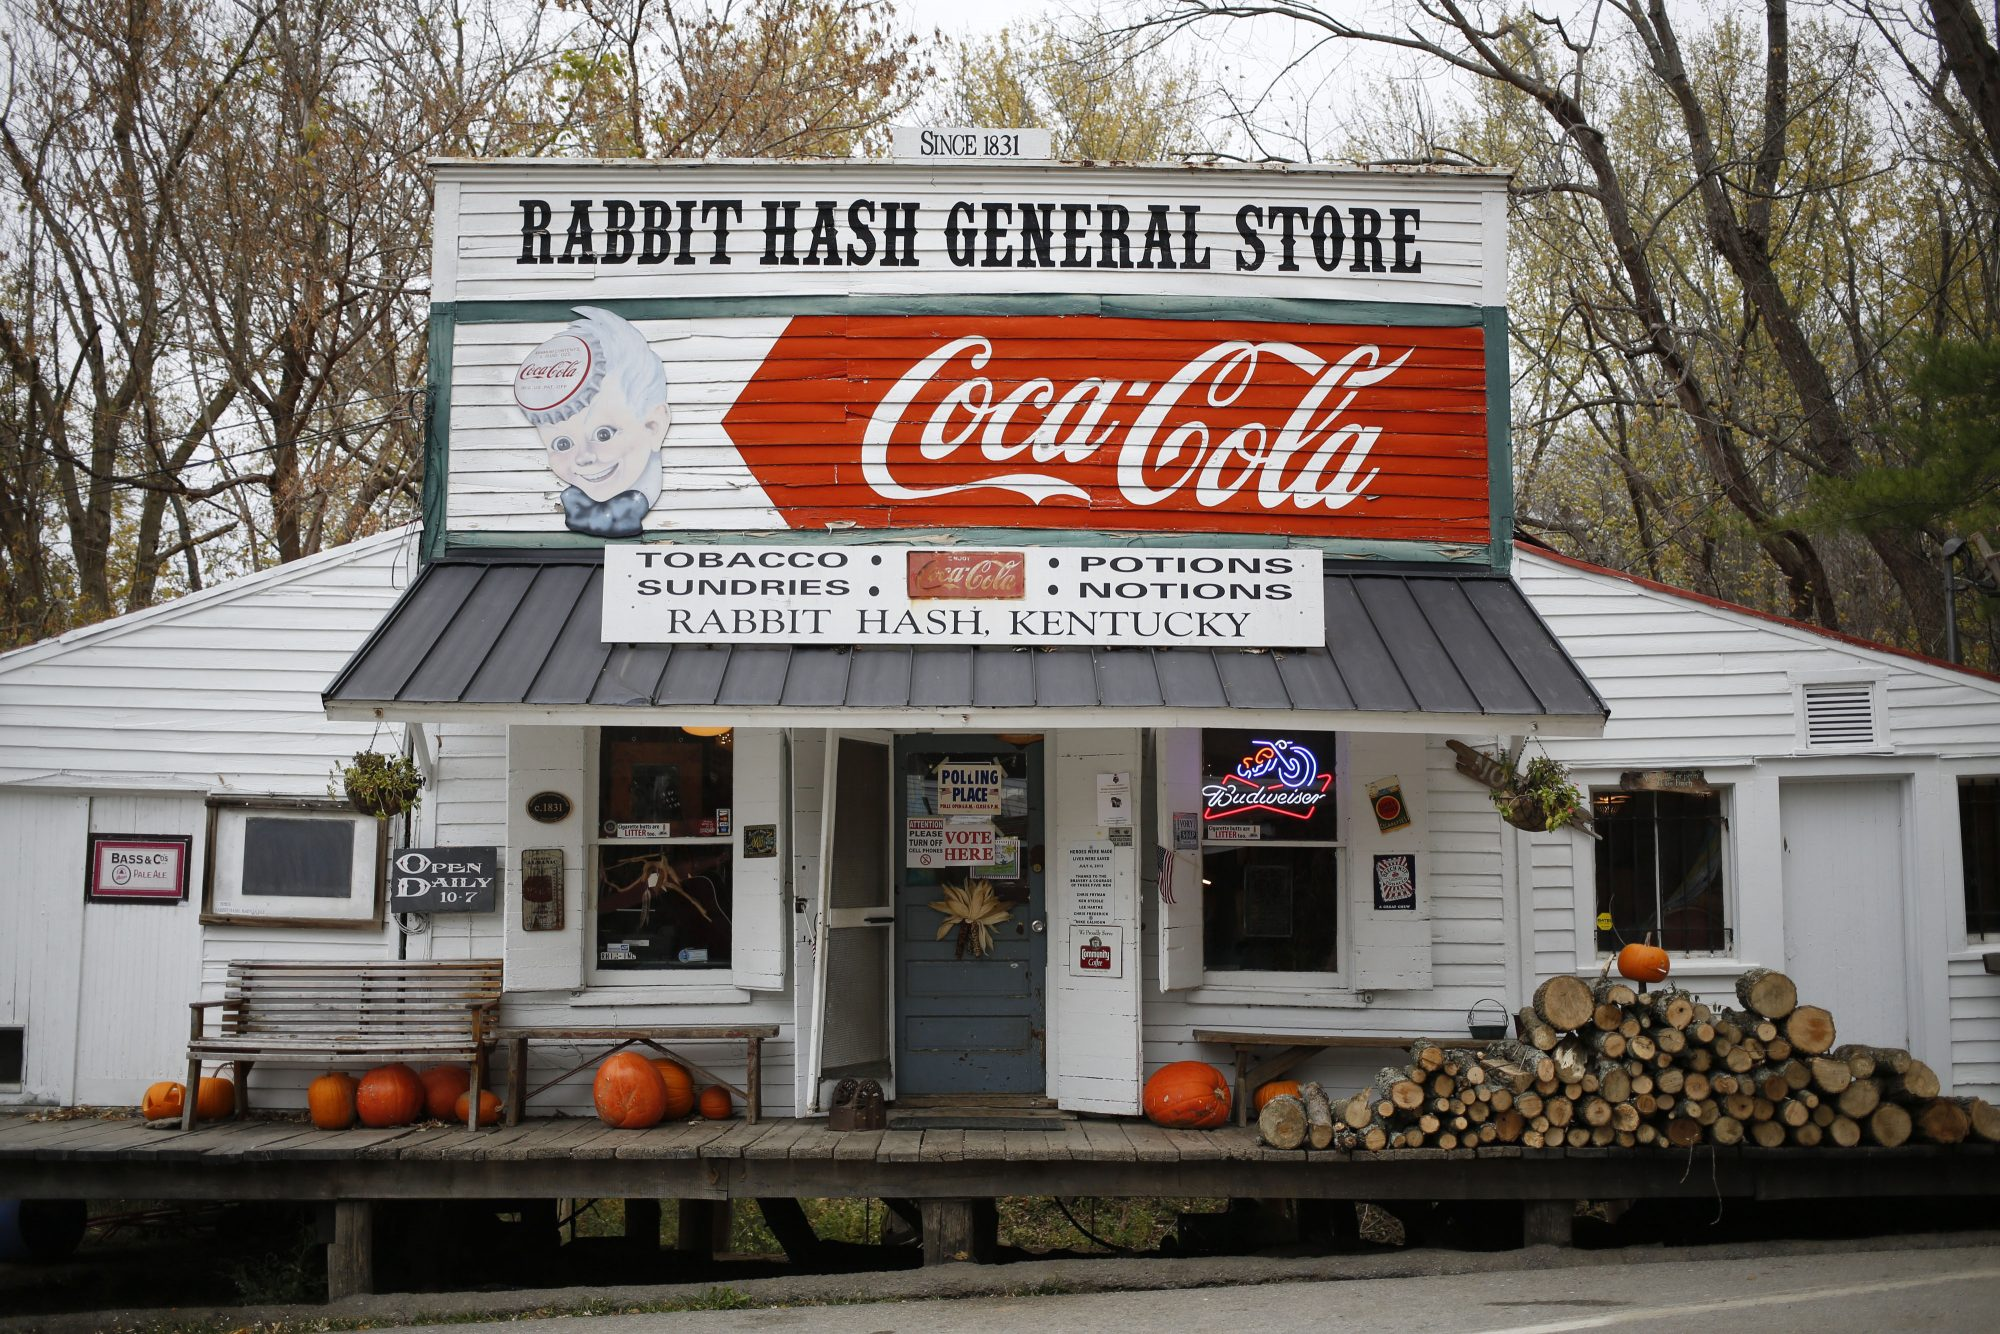 Rabbit Hash, Kentucky